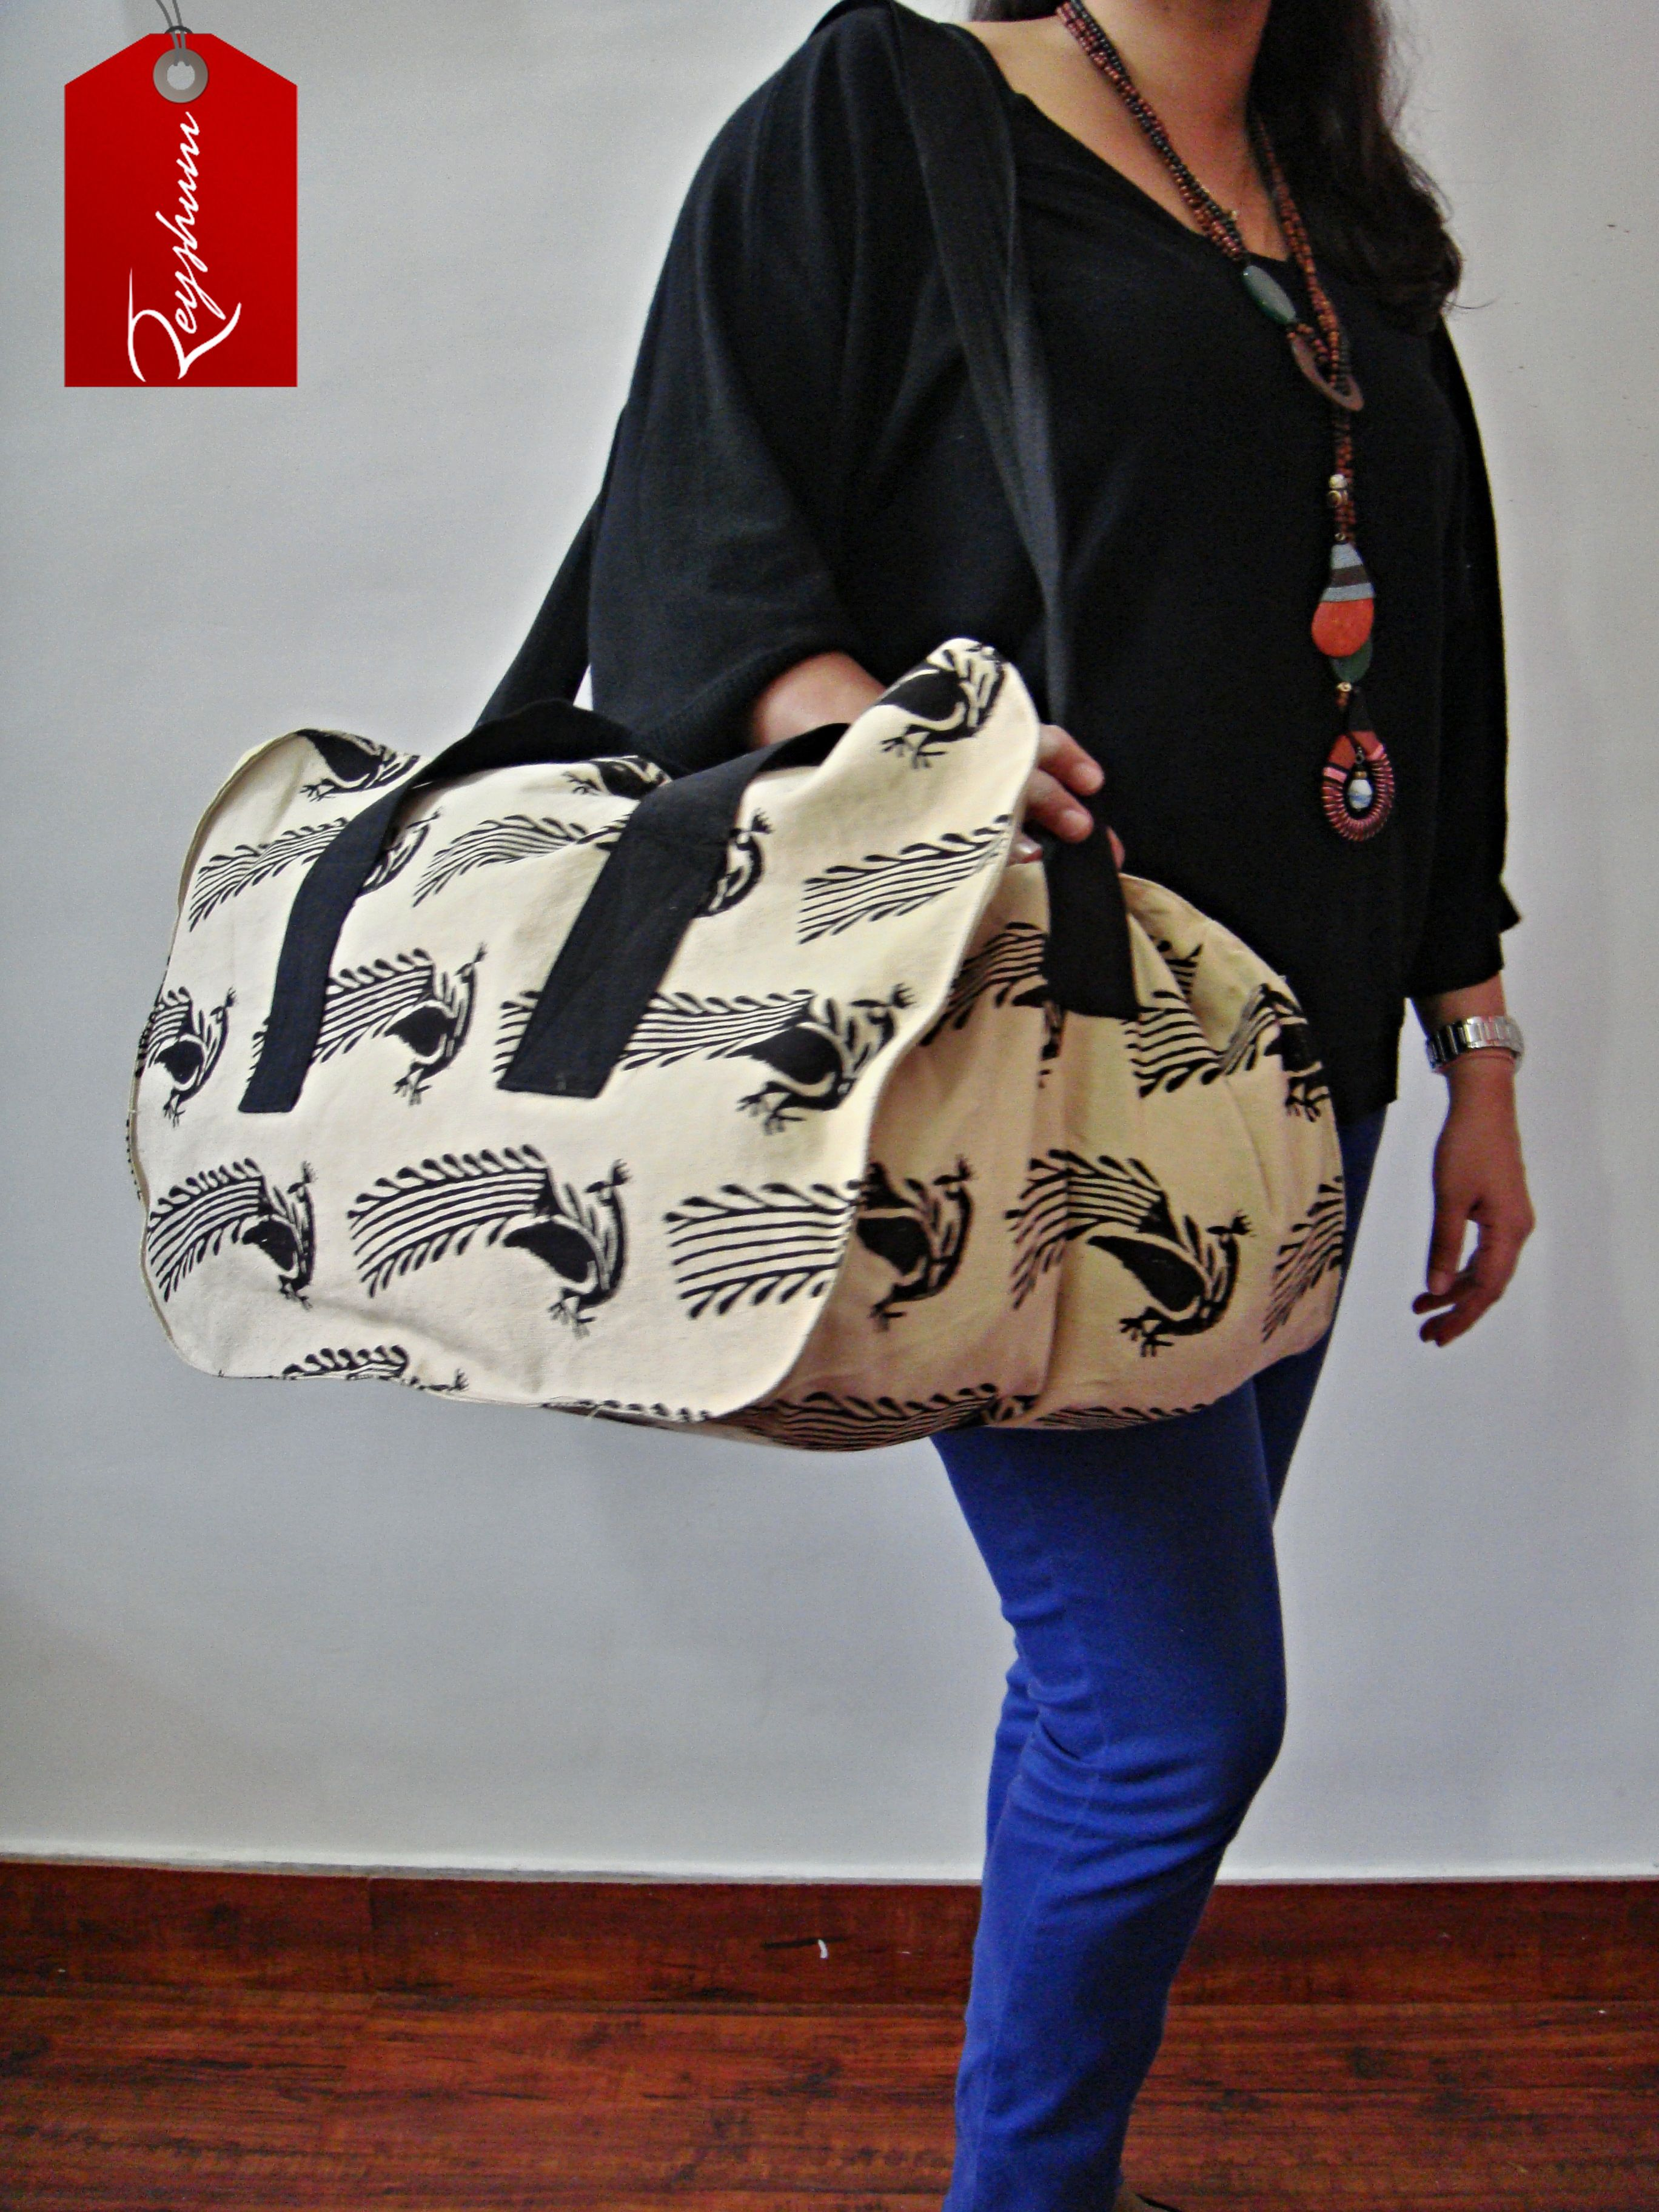 TOP Gift Idea 2014 - Everyday Use Large Bird Motif Block Print Bag -Travel Bag - Large #Weekender Bag @Etsy store etsy.me/1Bgw0kR